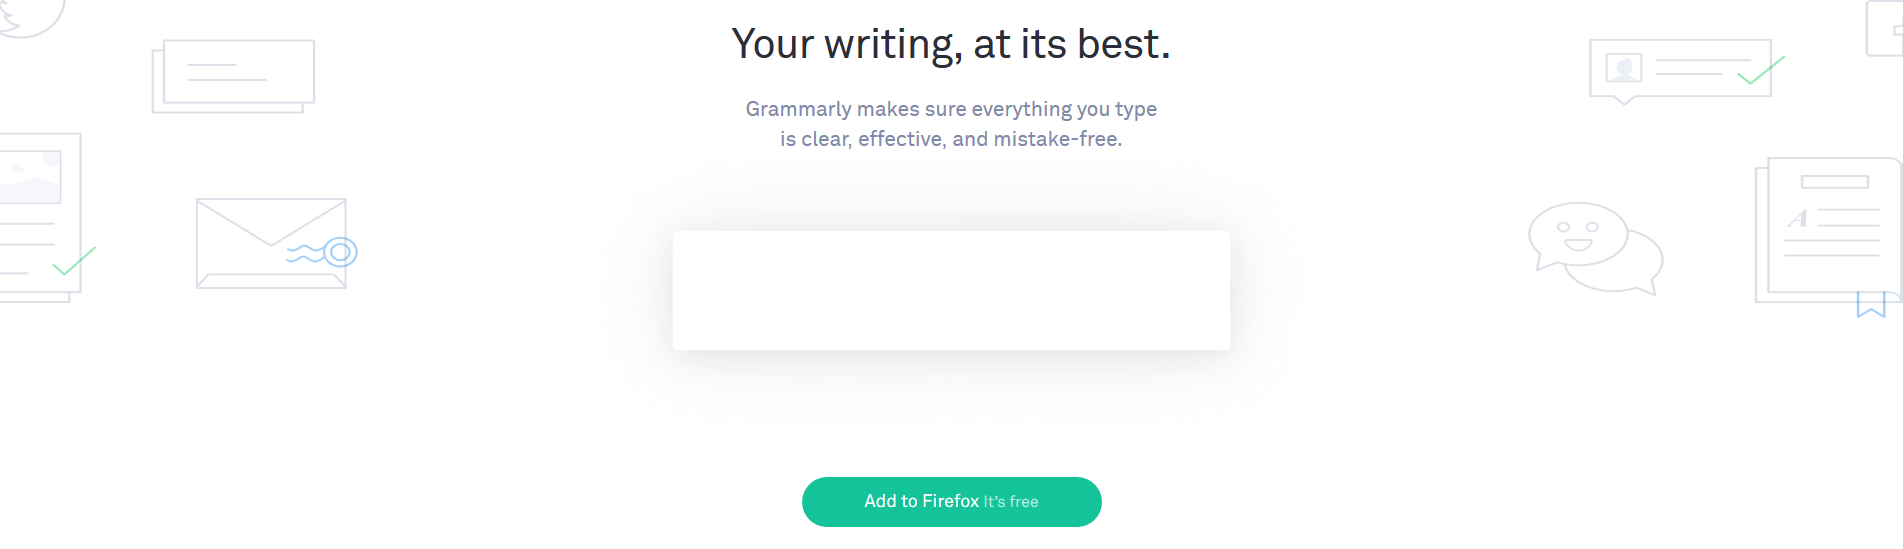 3 Writing Tools for Business and Marketing to Improve Style